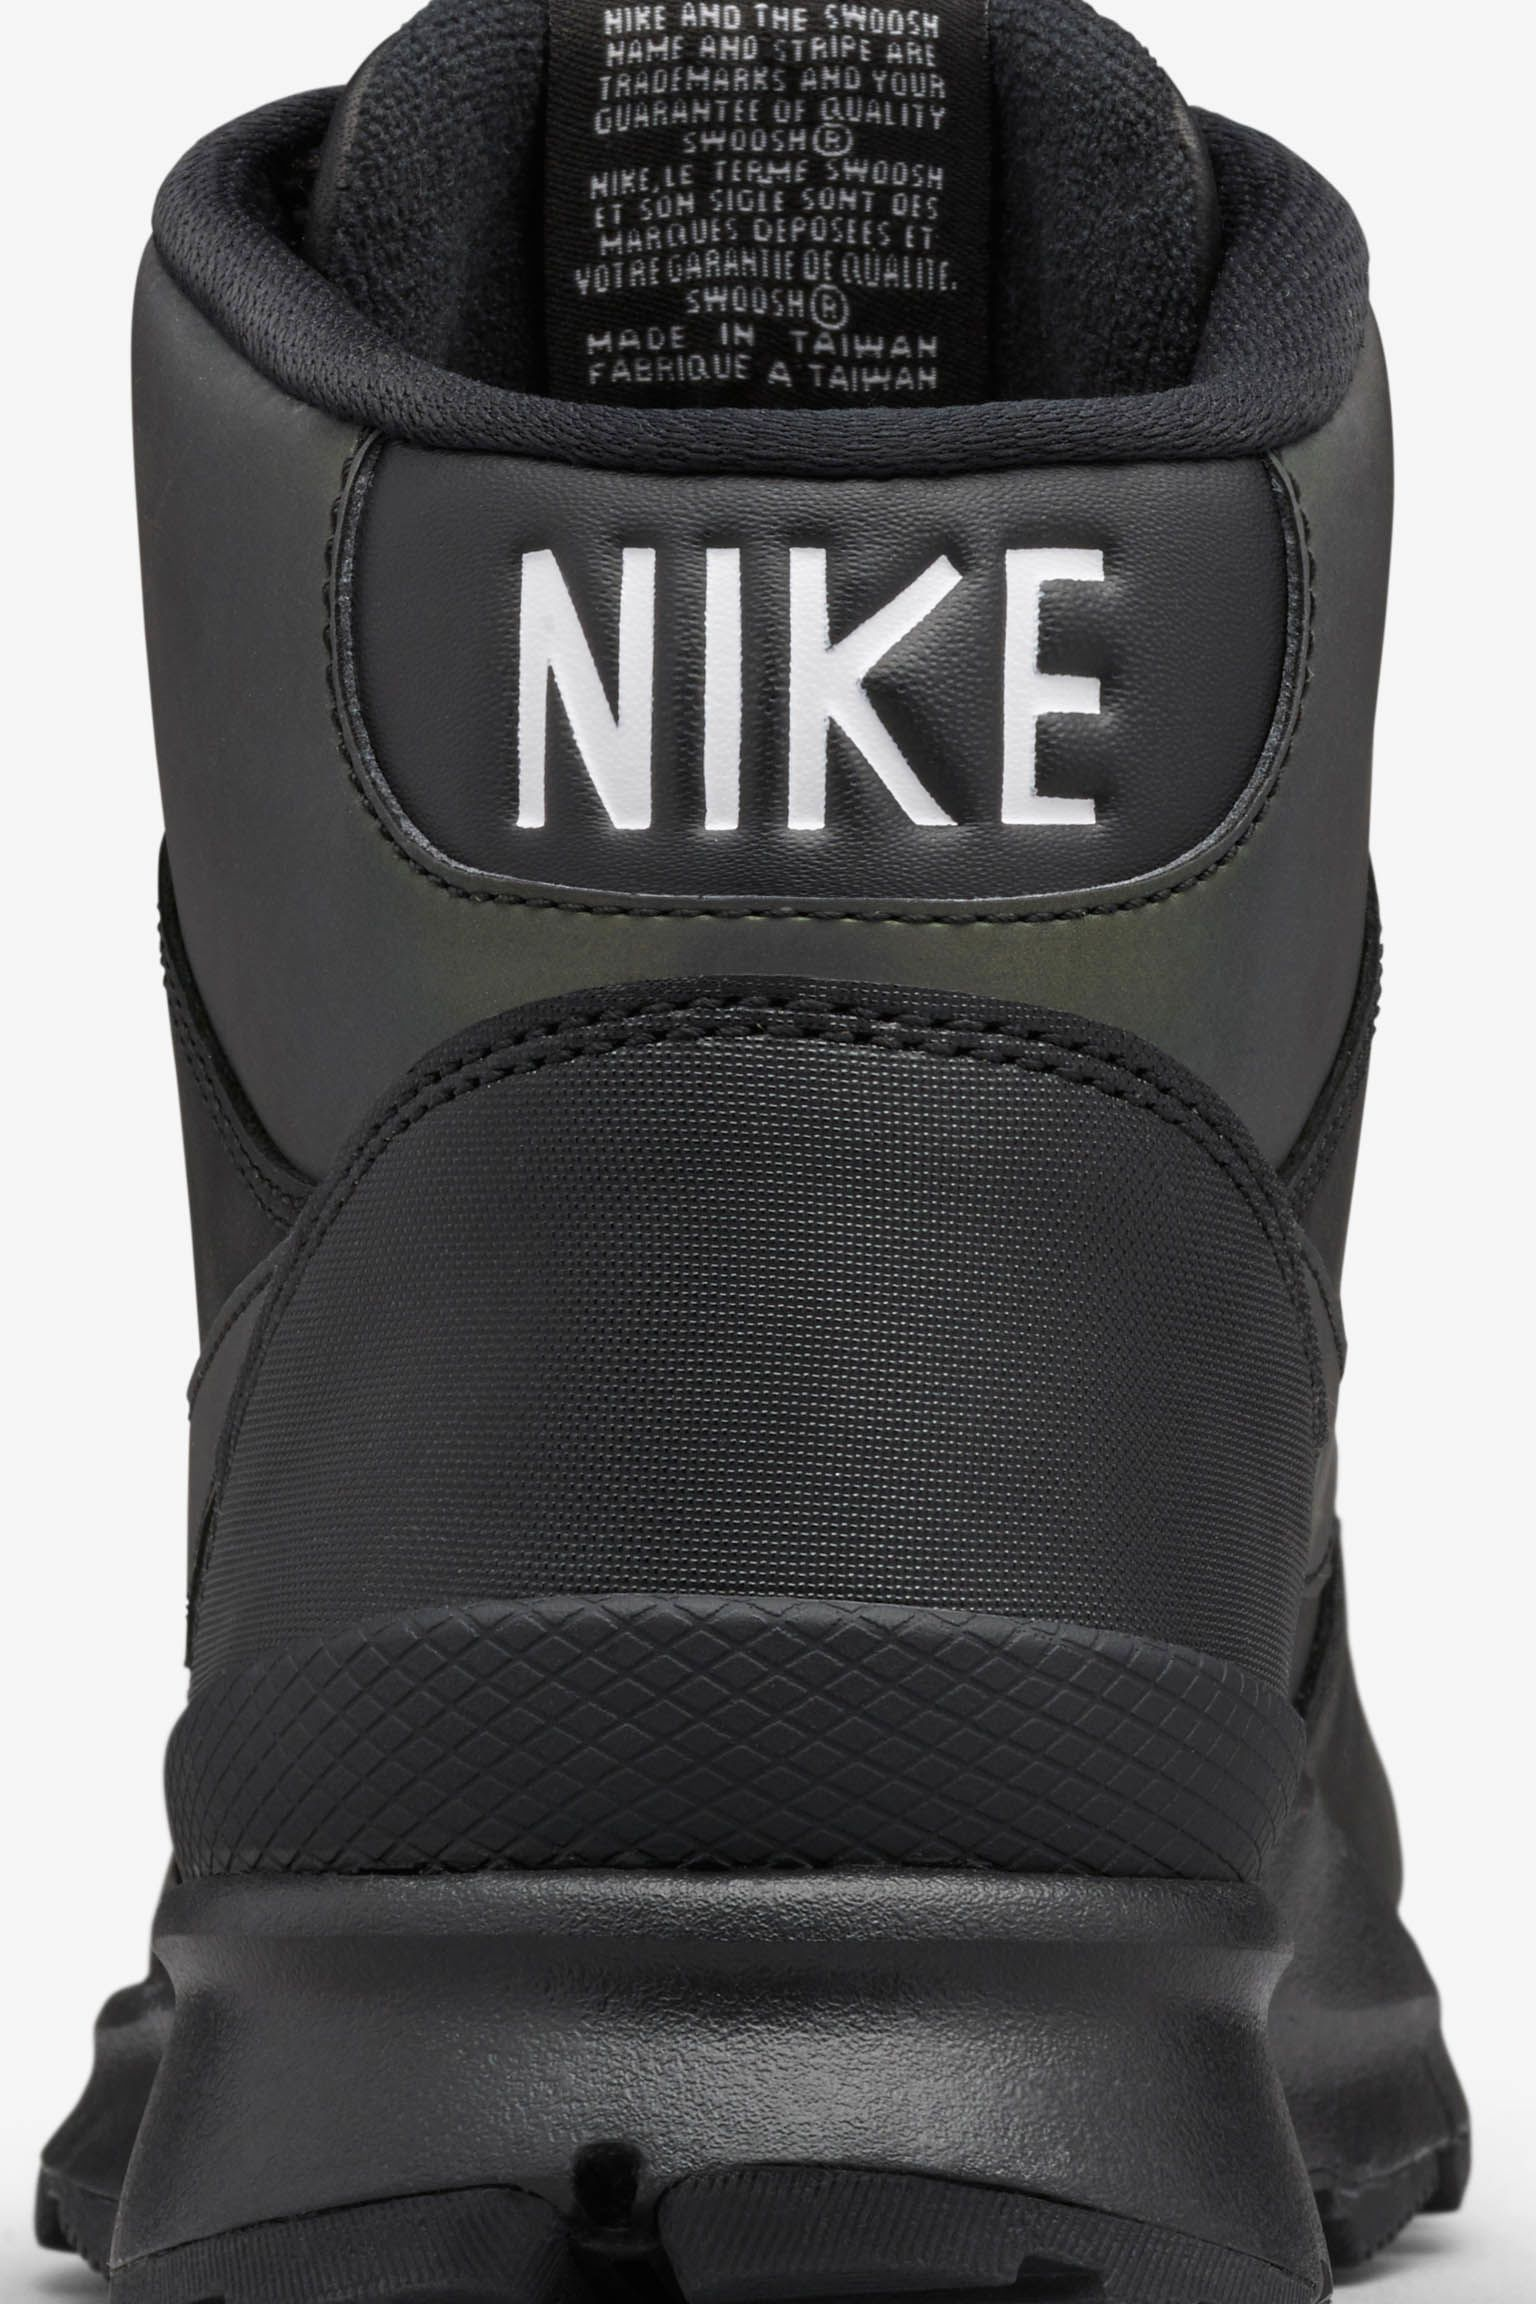 Women's Nike Acorra Sneakerboot 'Black & Reflect'